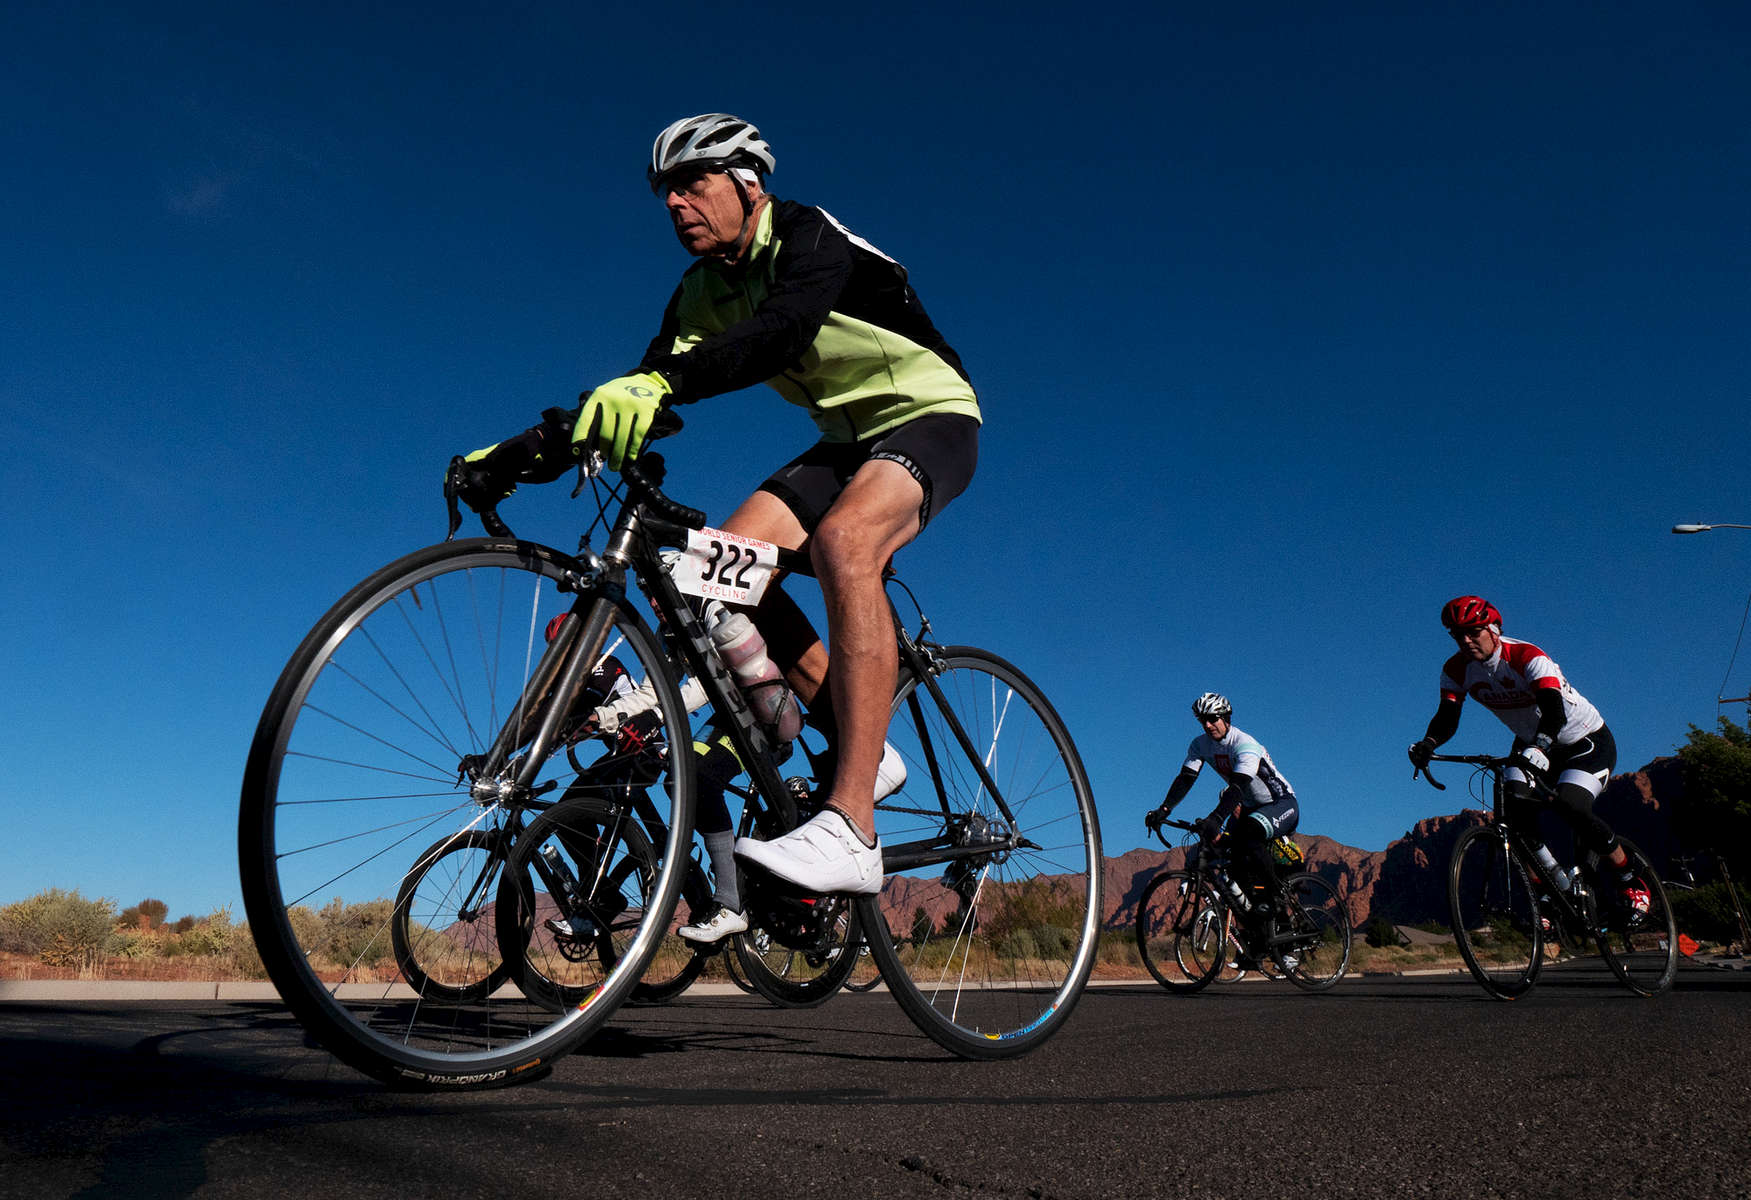 Senior athlete Gary Prahl competes in the cycling road race during the Huntsman World Senior Games on October 11, 2019 in St. George, Utah.